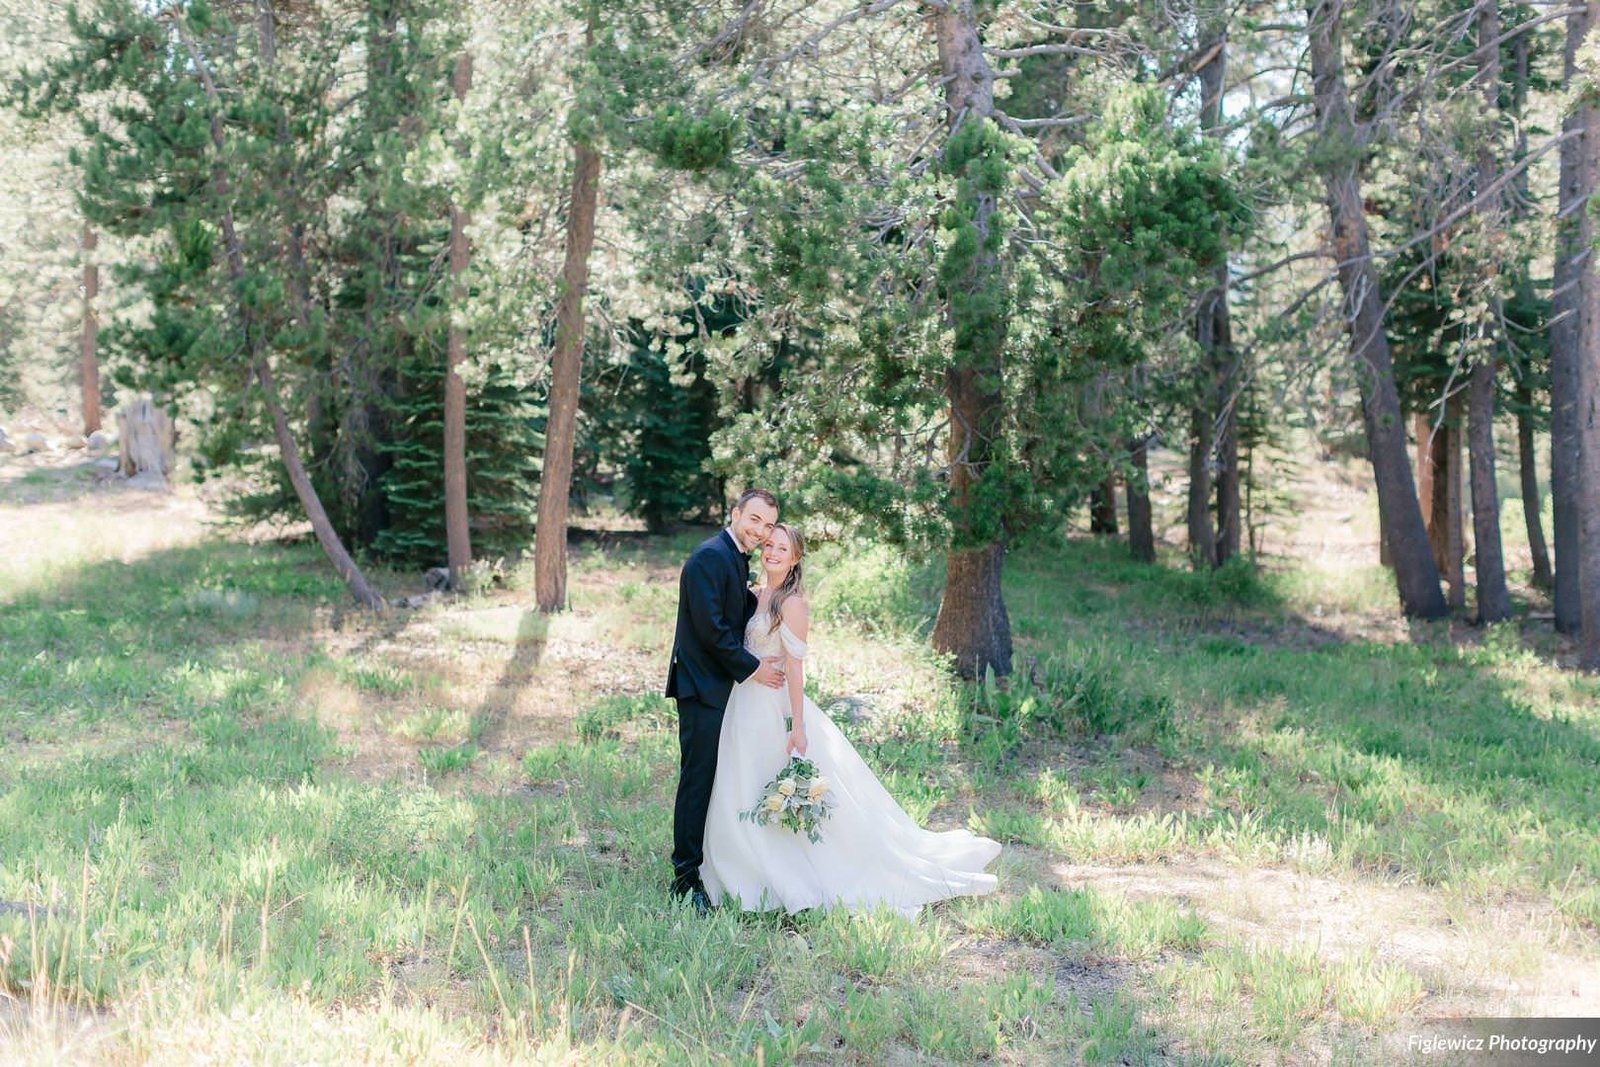 Garden_Tinsley_FiglewiczPhotography_LakeTahoeWeddingSquawValleyCreekTaylorBrendan00071_big